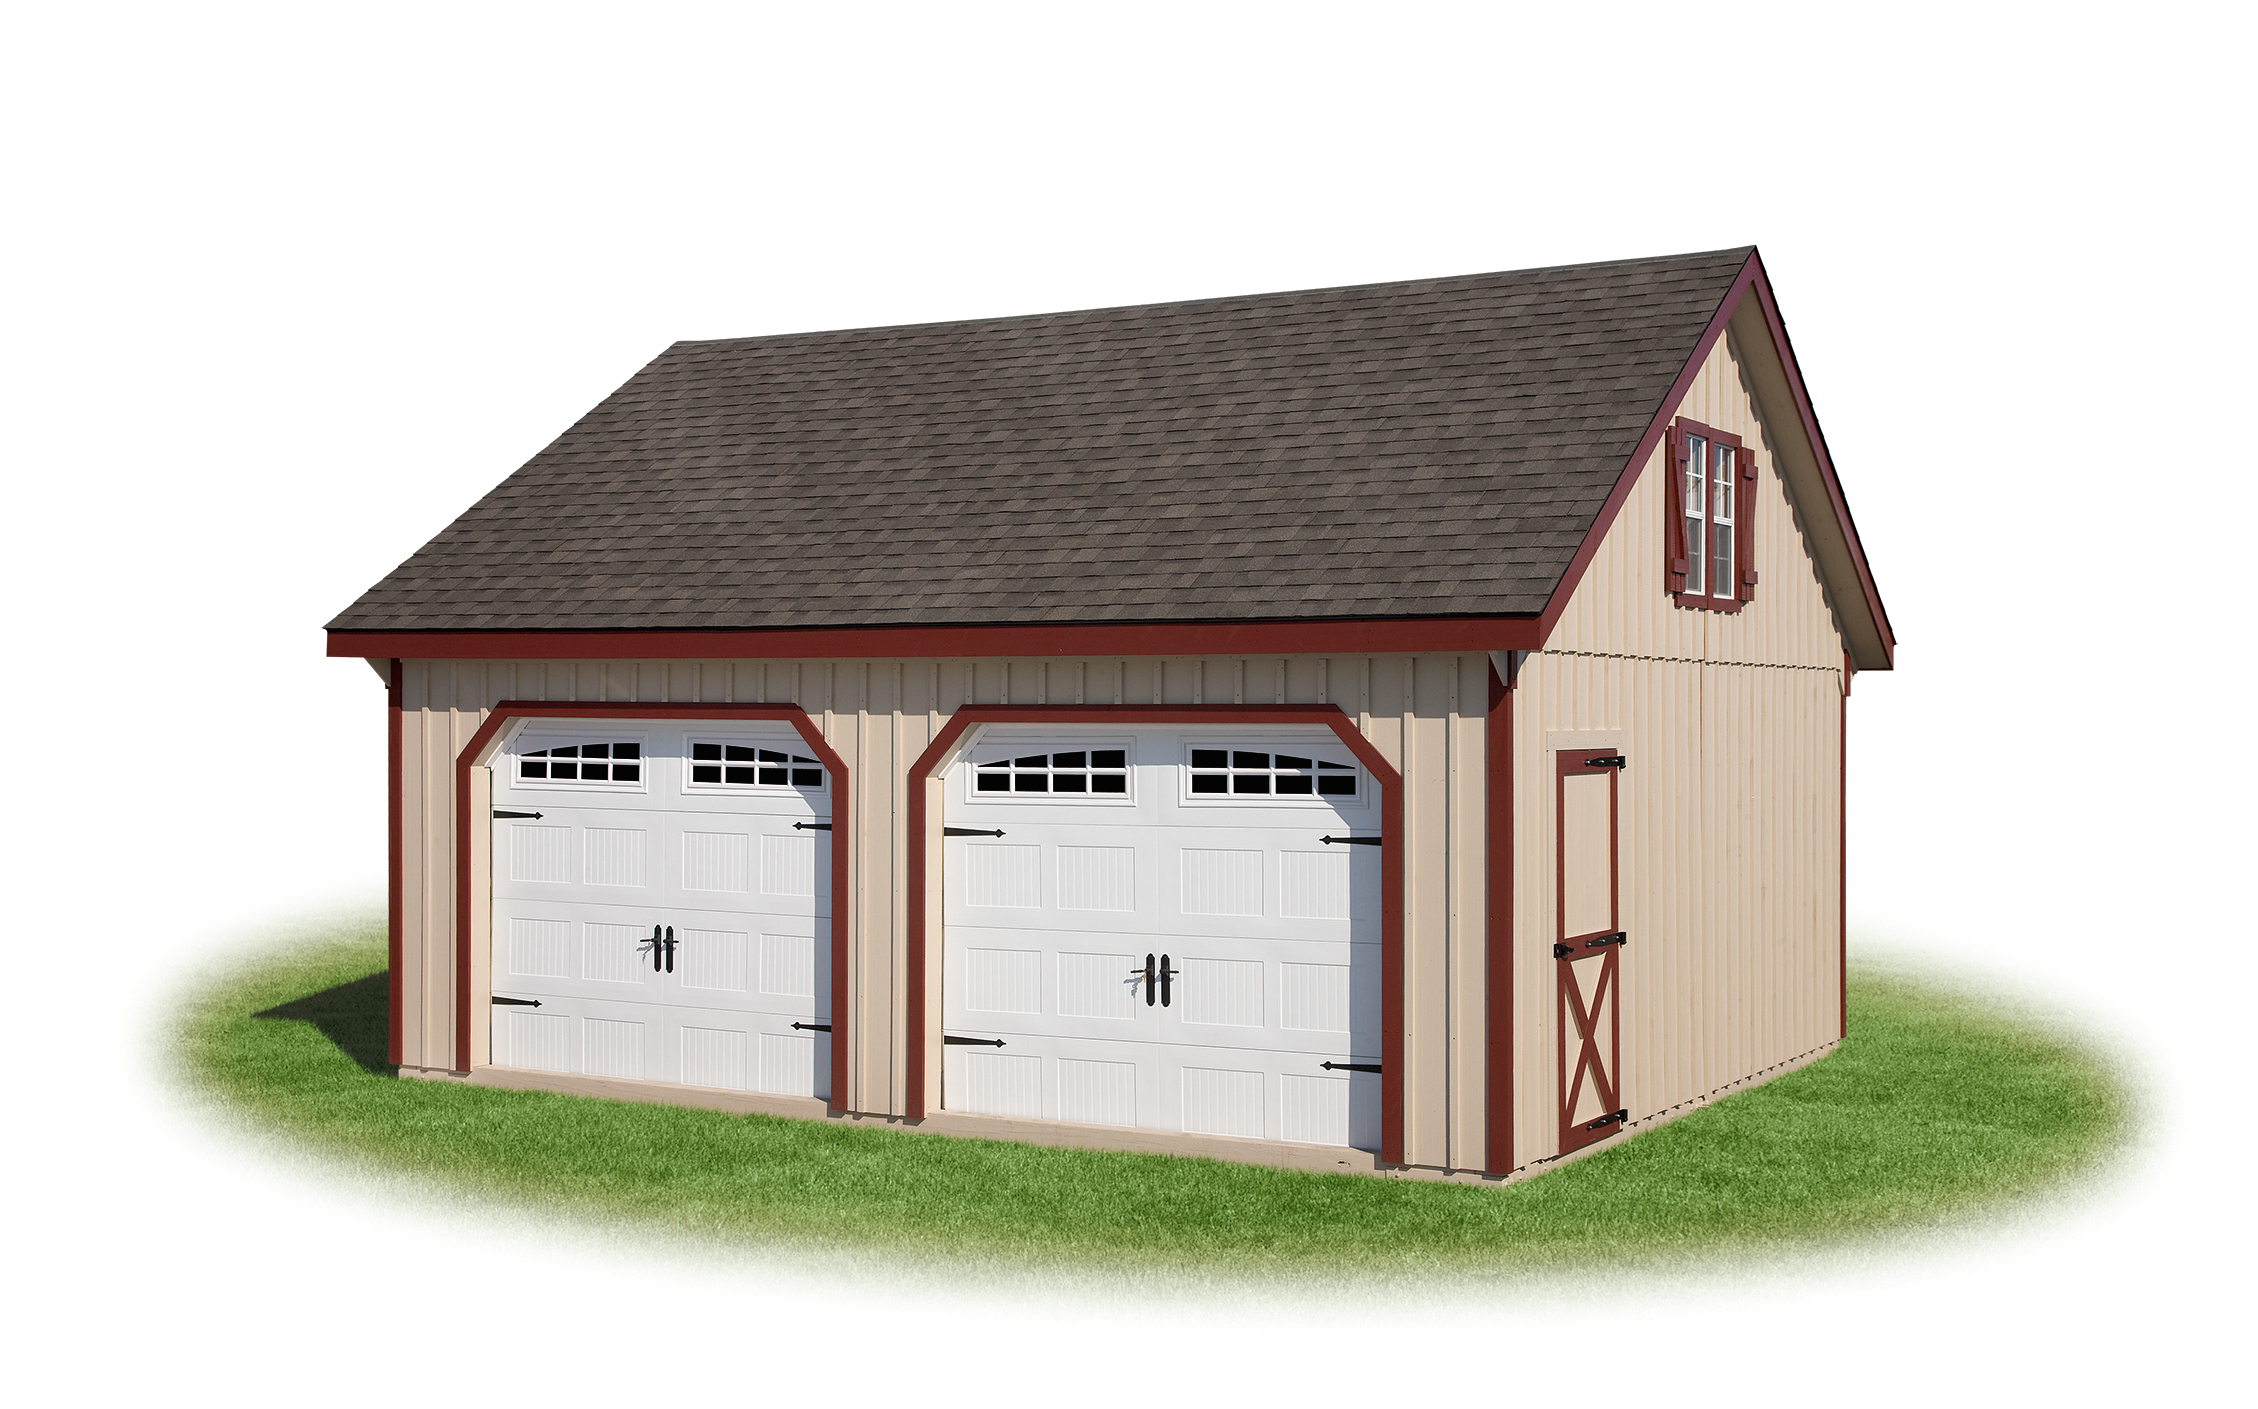 20 X 24 Double Wide Two Story Garage 171 Amish Sheds From Bob Foote